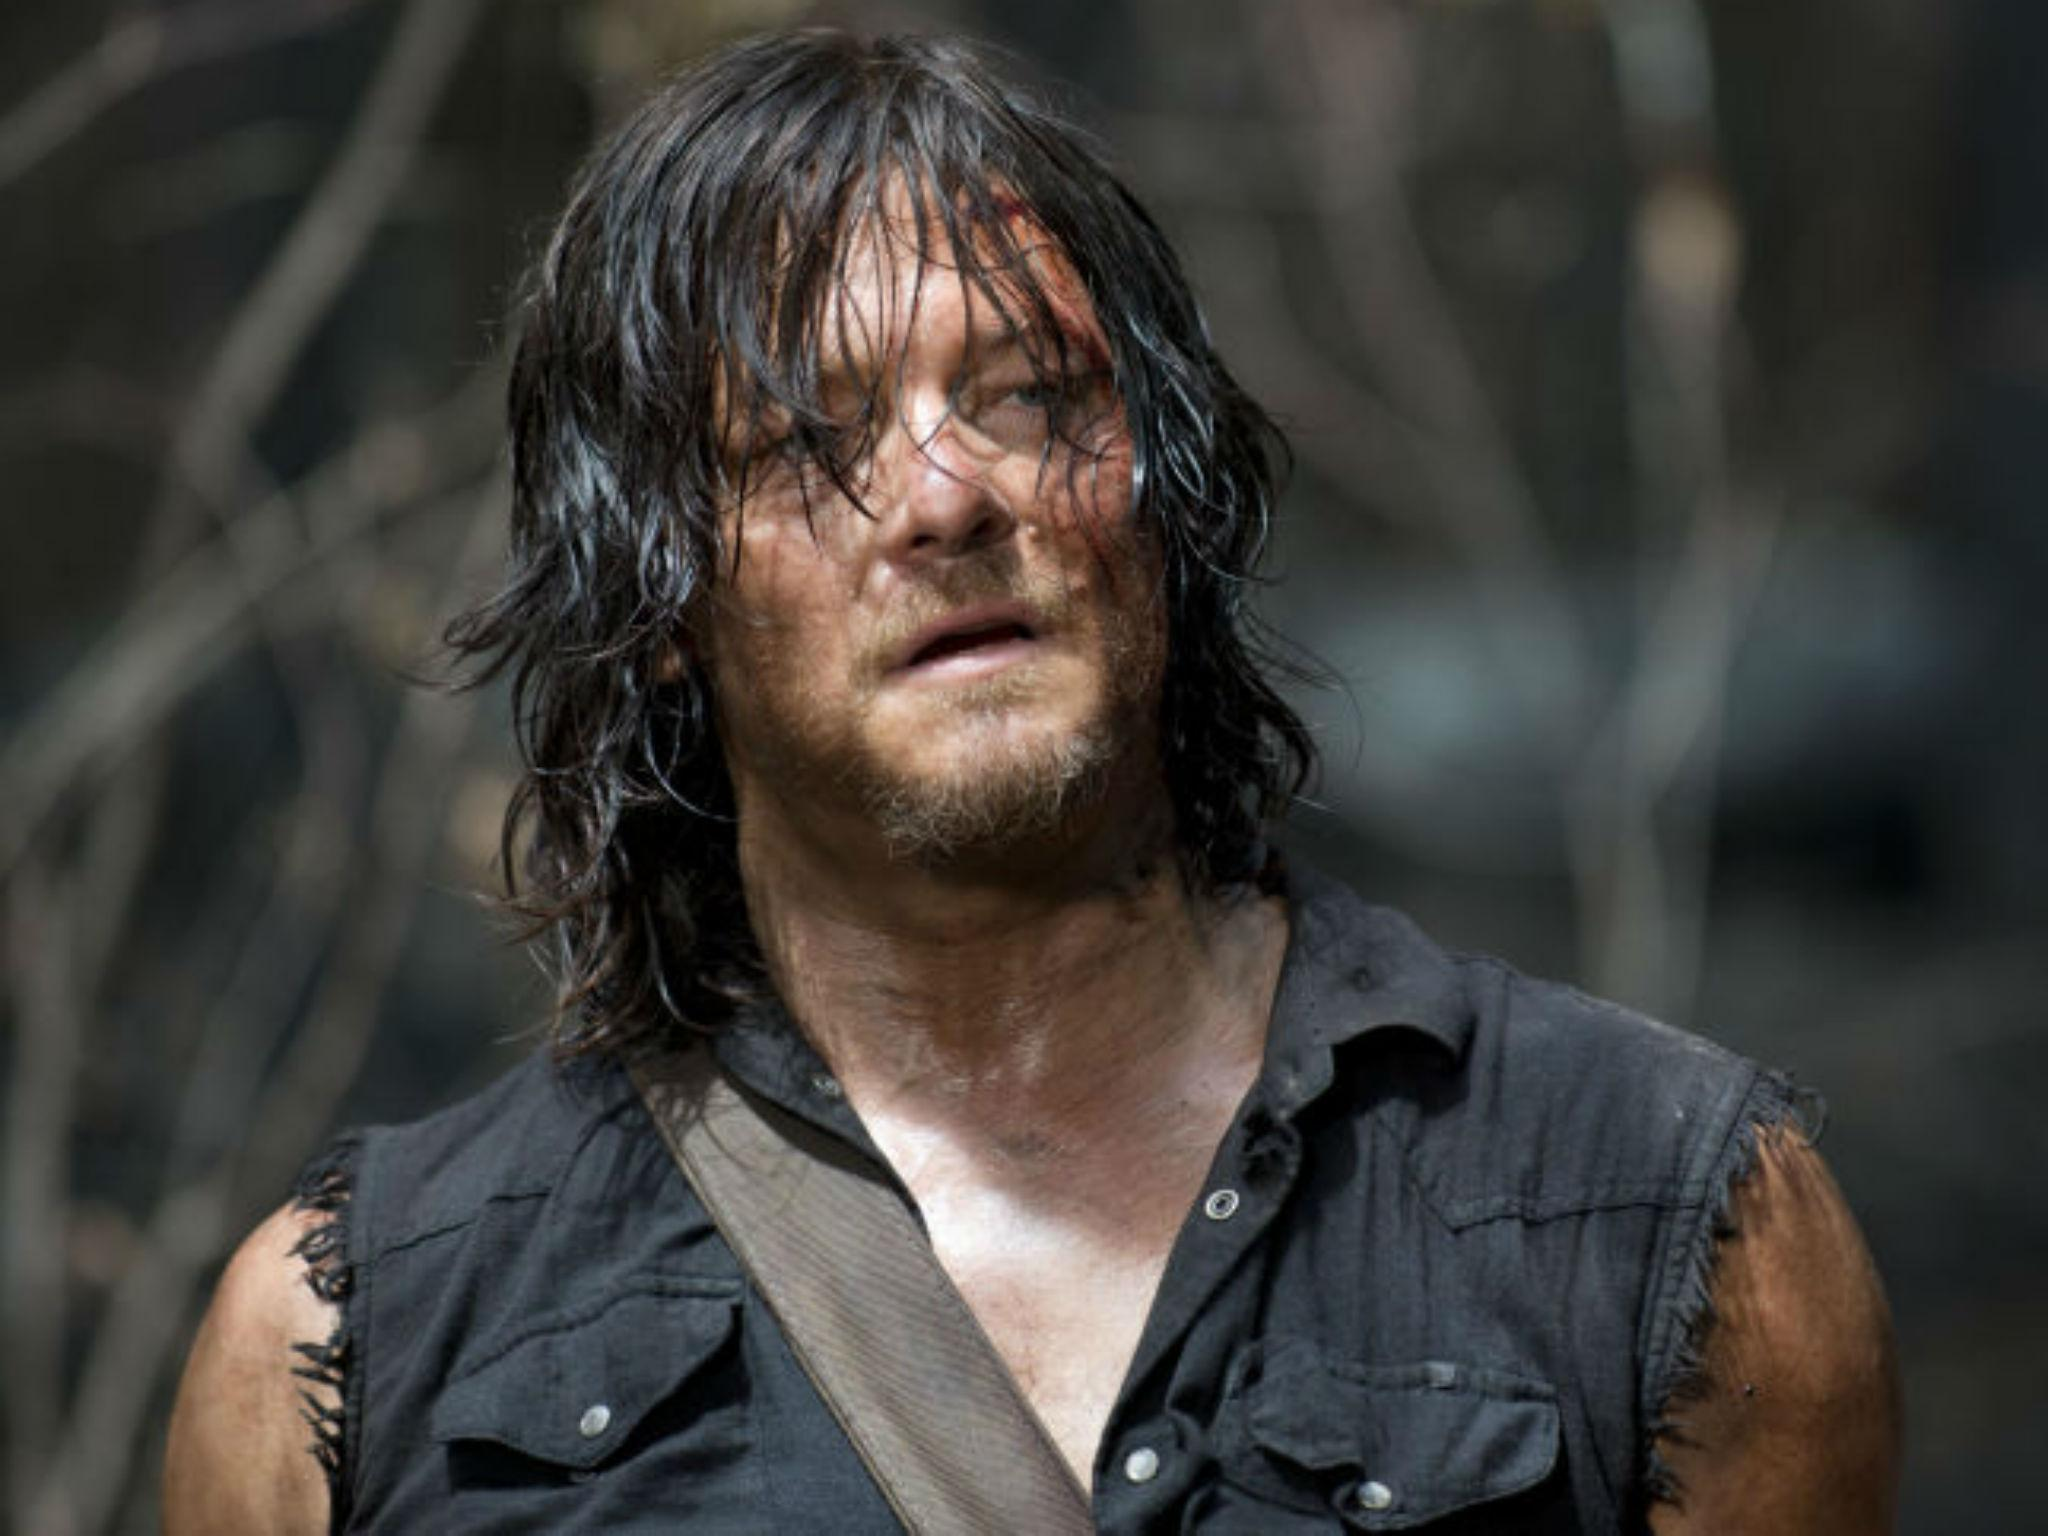 Who Plays Beta in The Walking Dead? | POPSUGAR Entertainment